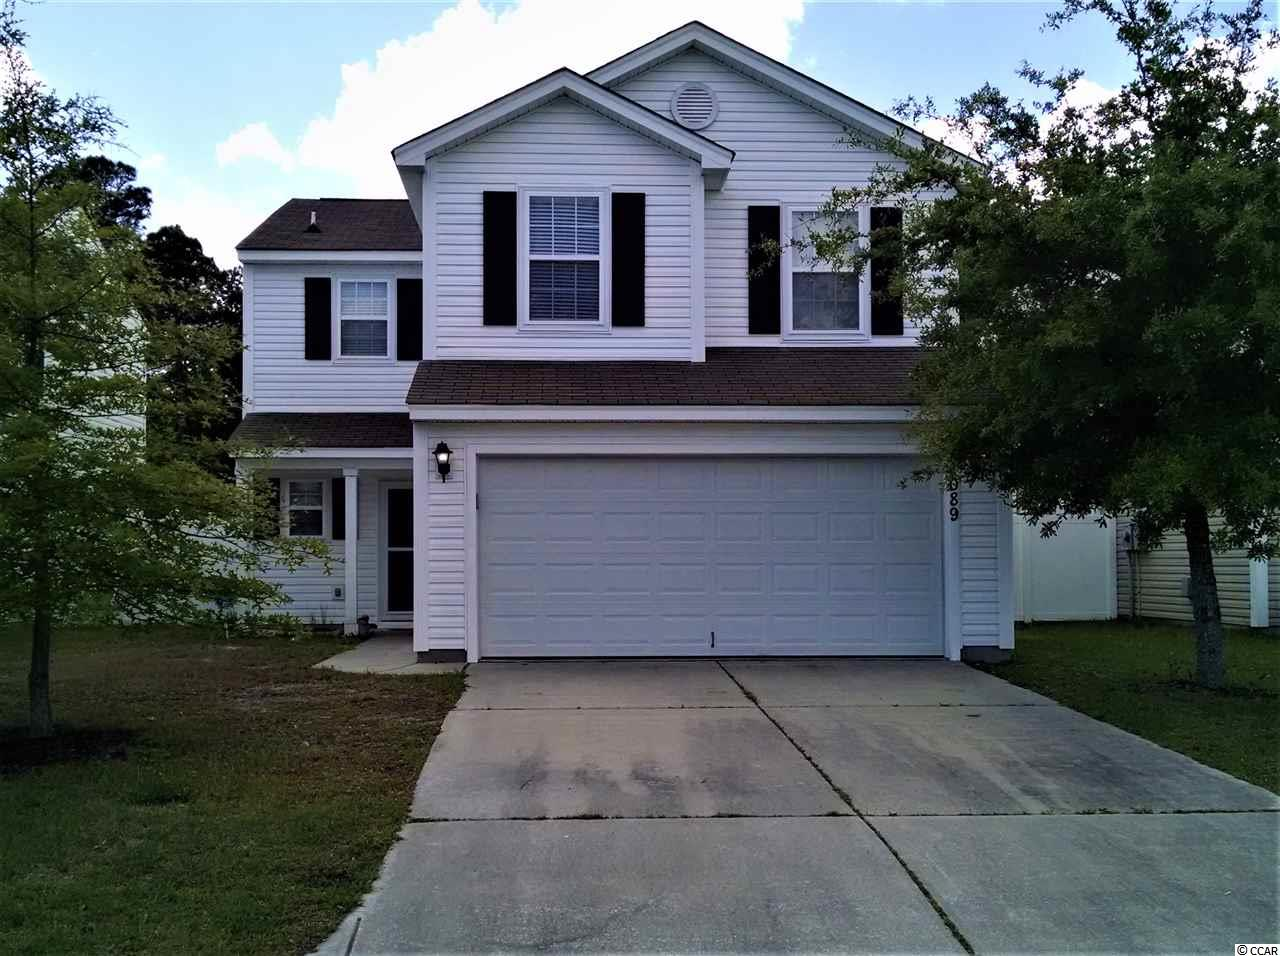 1089 Stoney Falls Blvd 29579 - One of Myrtle Beach Homes for Sale